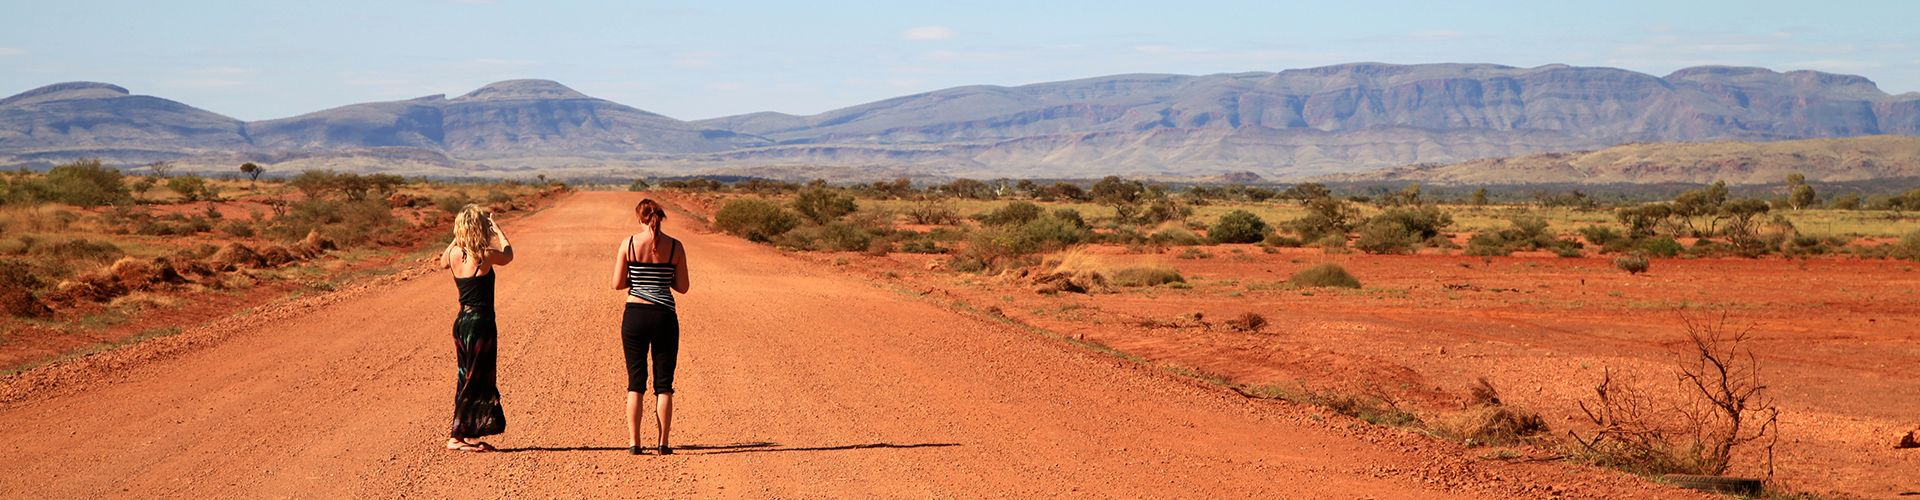 Perth to Broome Overland